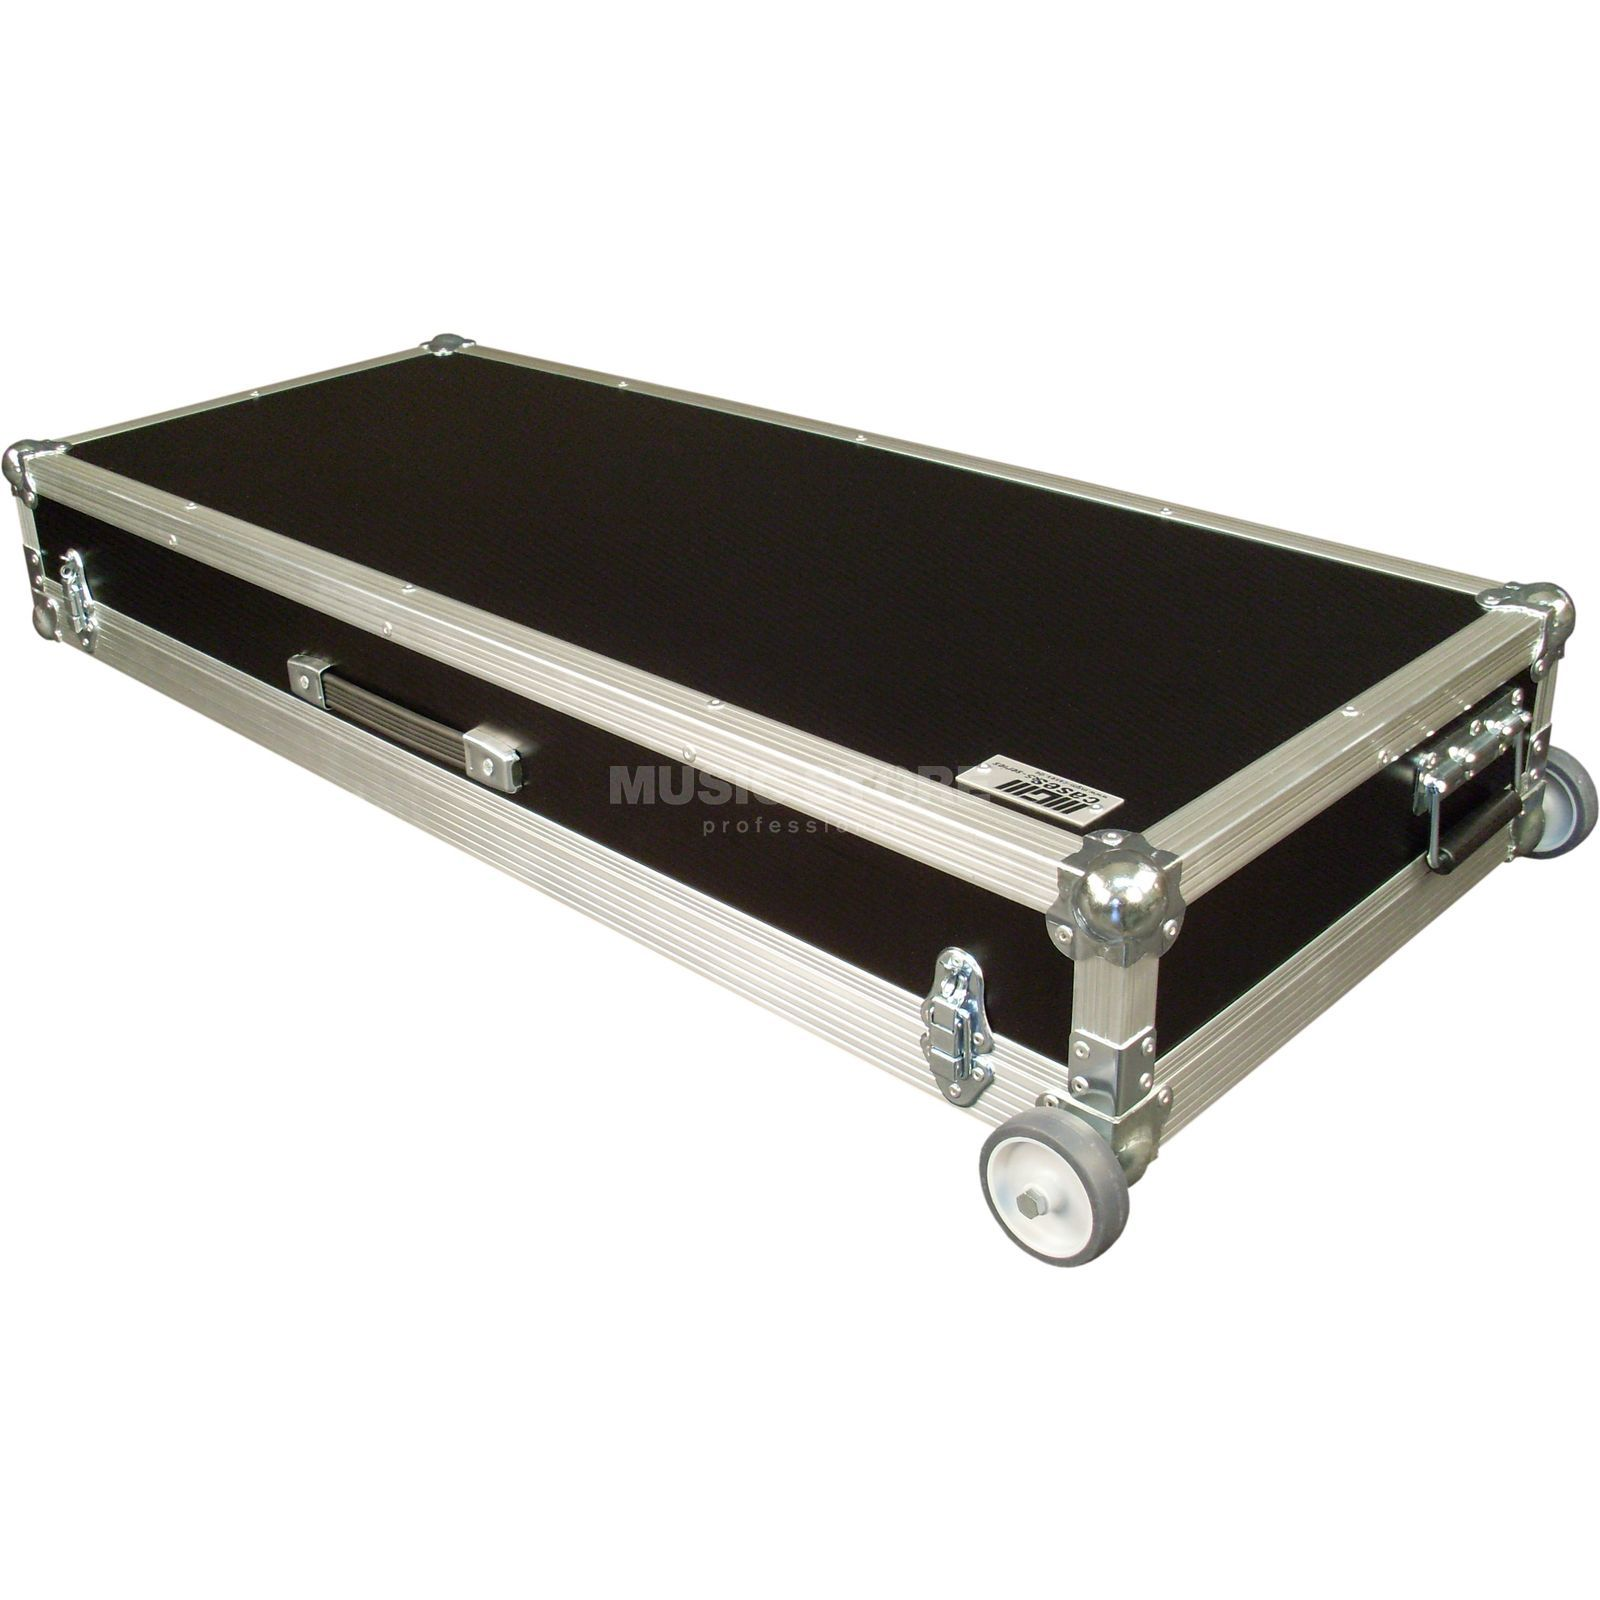 BOXPROFI RS-Case Yamaha P-35,P-85,P-95 with 3 handles and castors Produktbillede